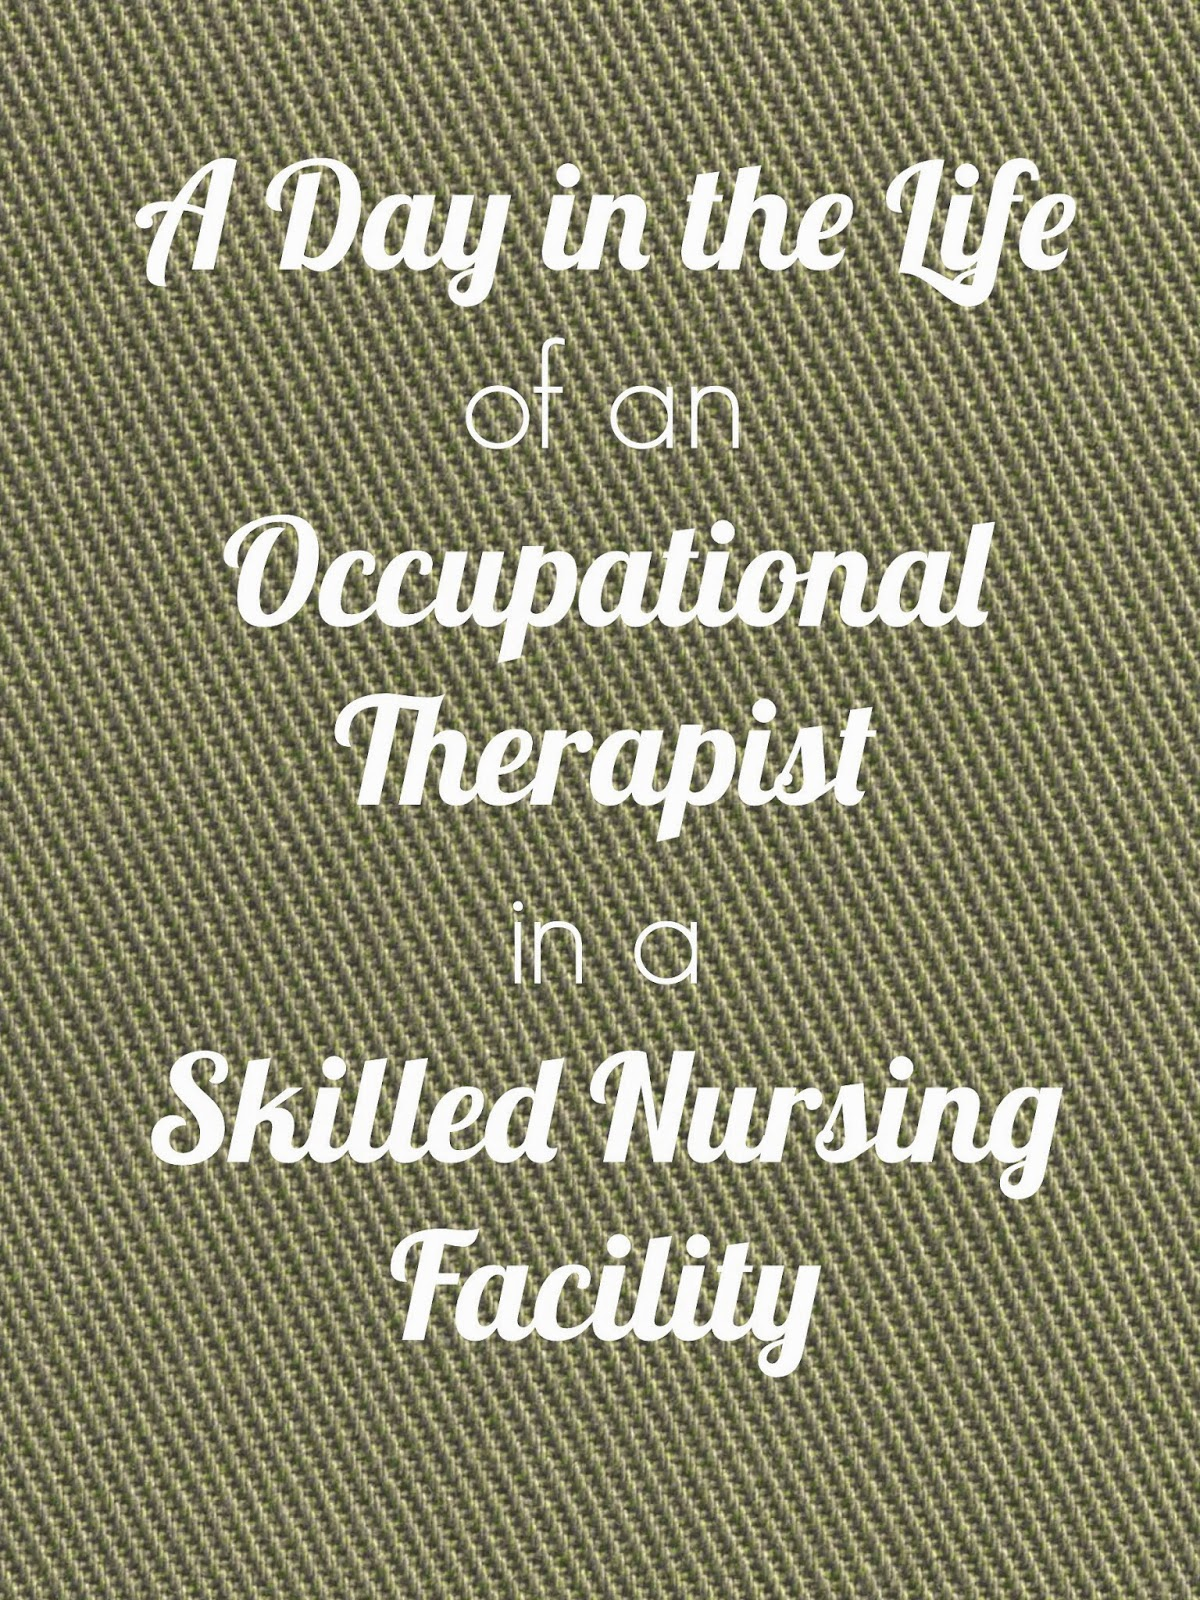 Ot Cafe A Day In The Life Skilled Nursing Facility